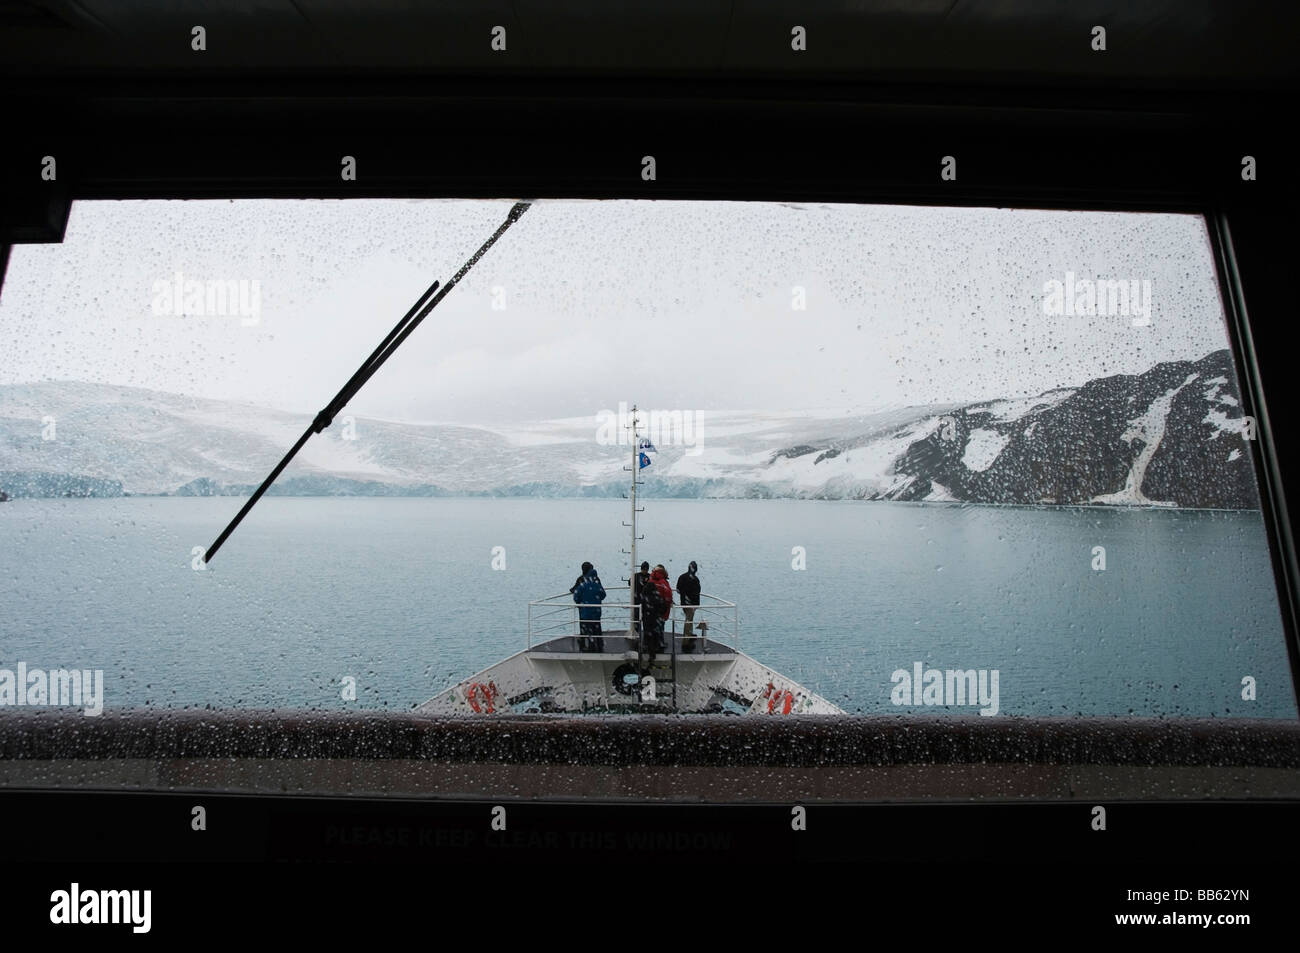 Team members on an expedition ship as it approaches King George Island off the Antarctic Peninsula - Stock Image